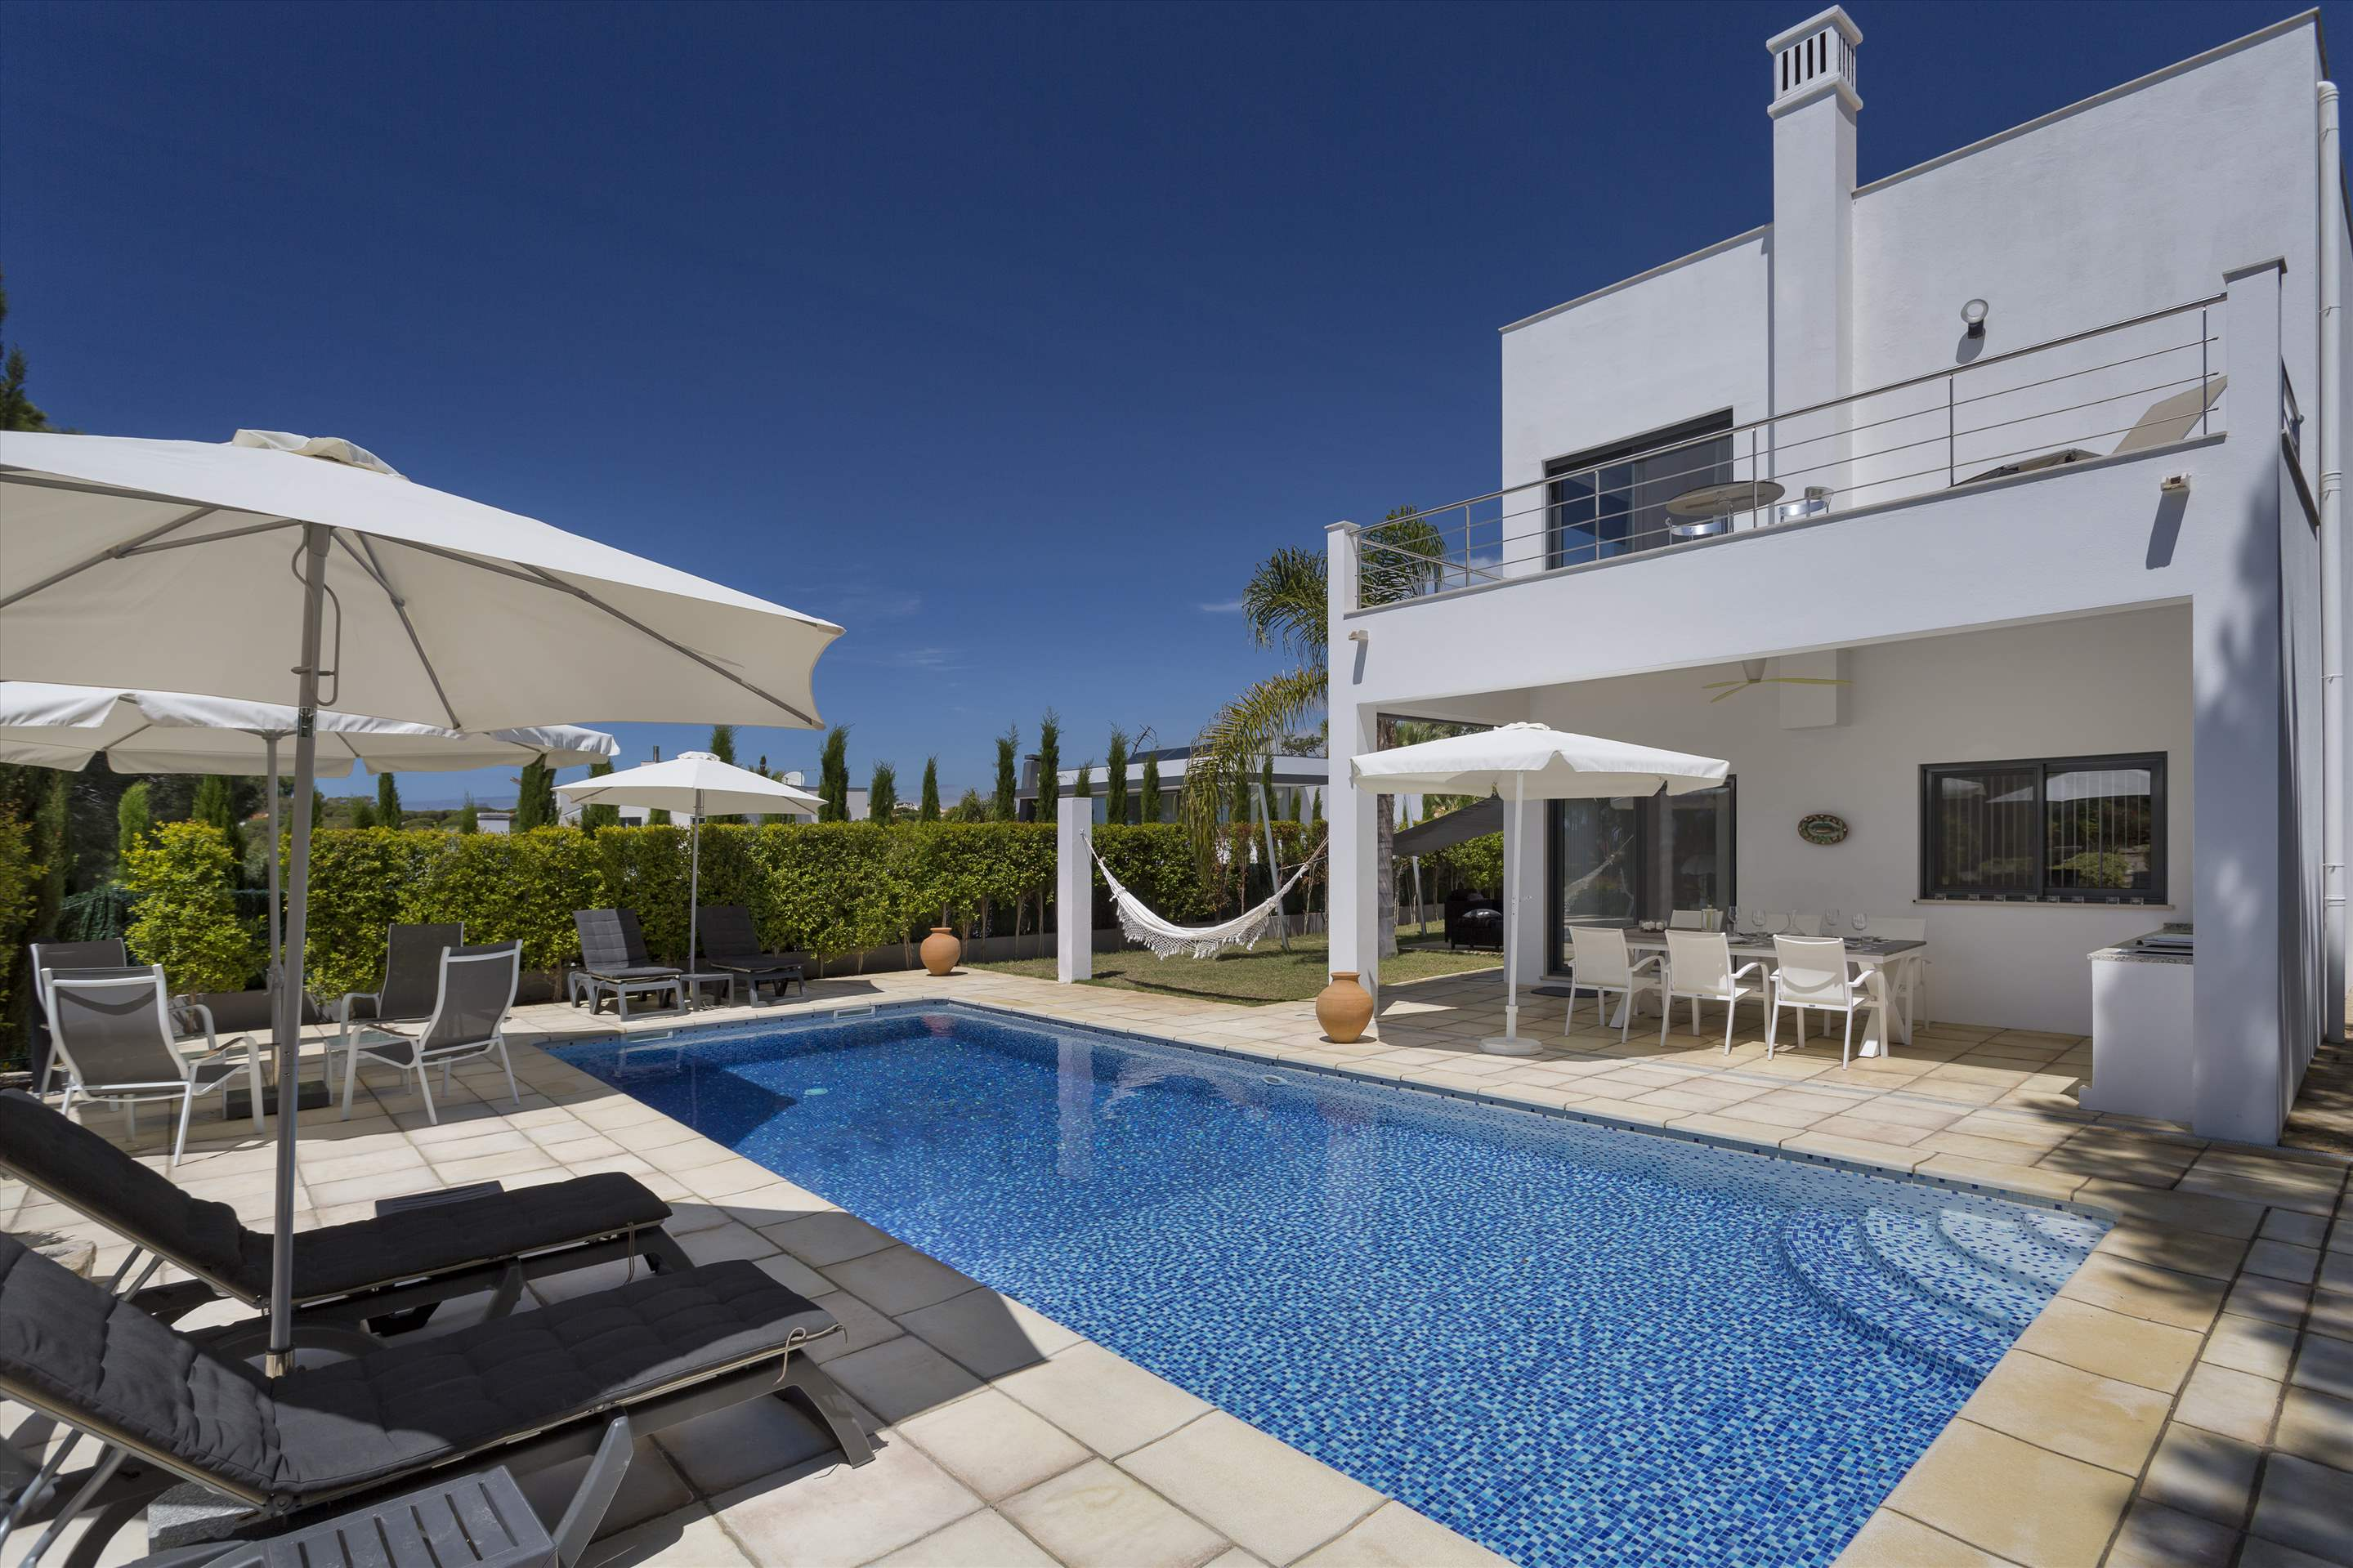 Villa Selena, 2 bedroom villa in Quinta do Lago, Algarve